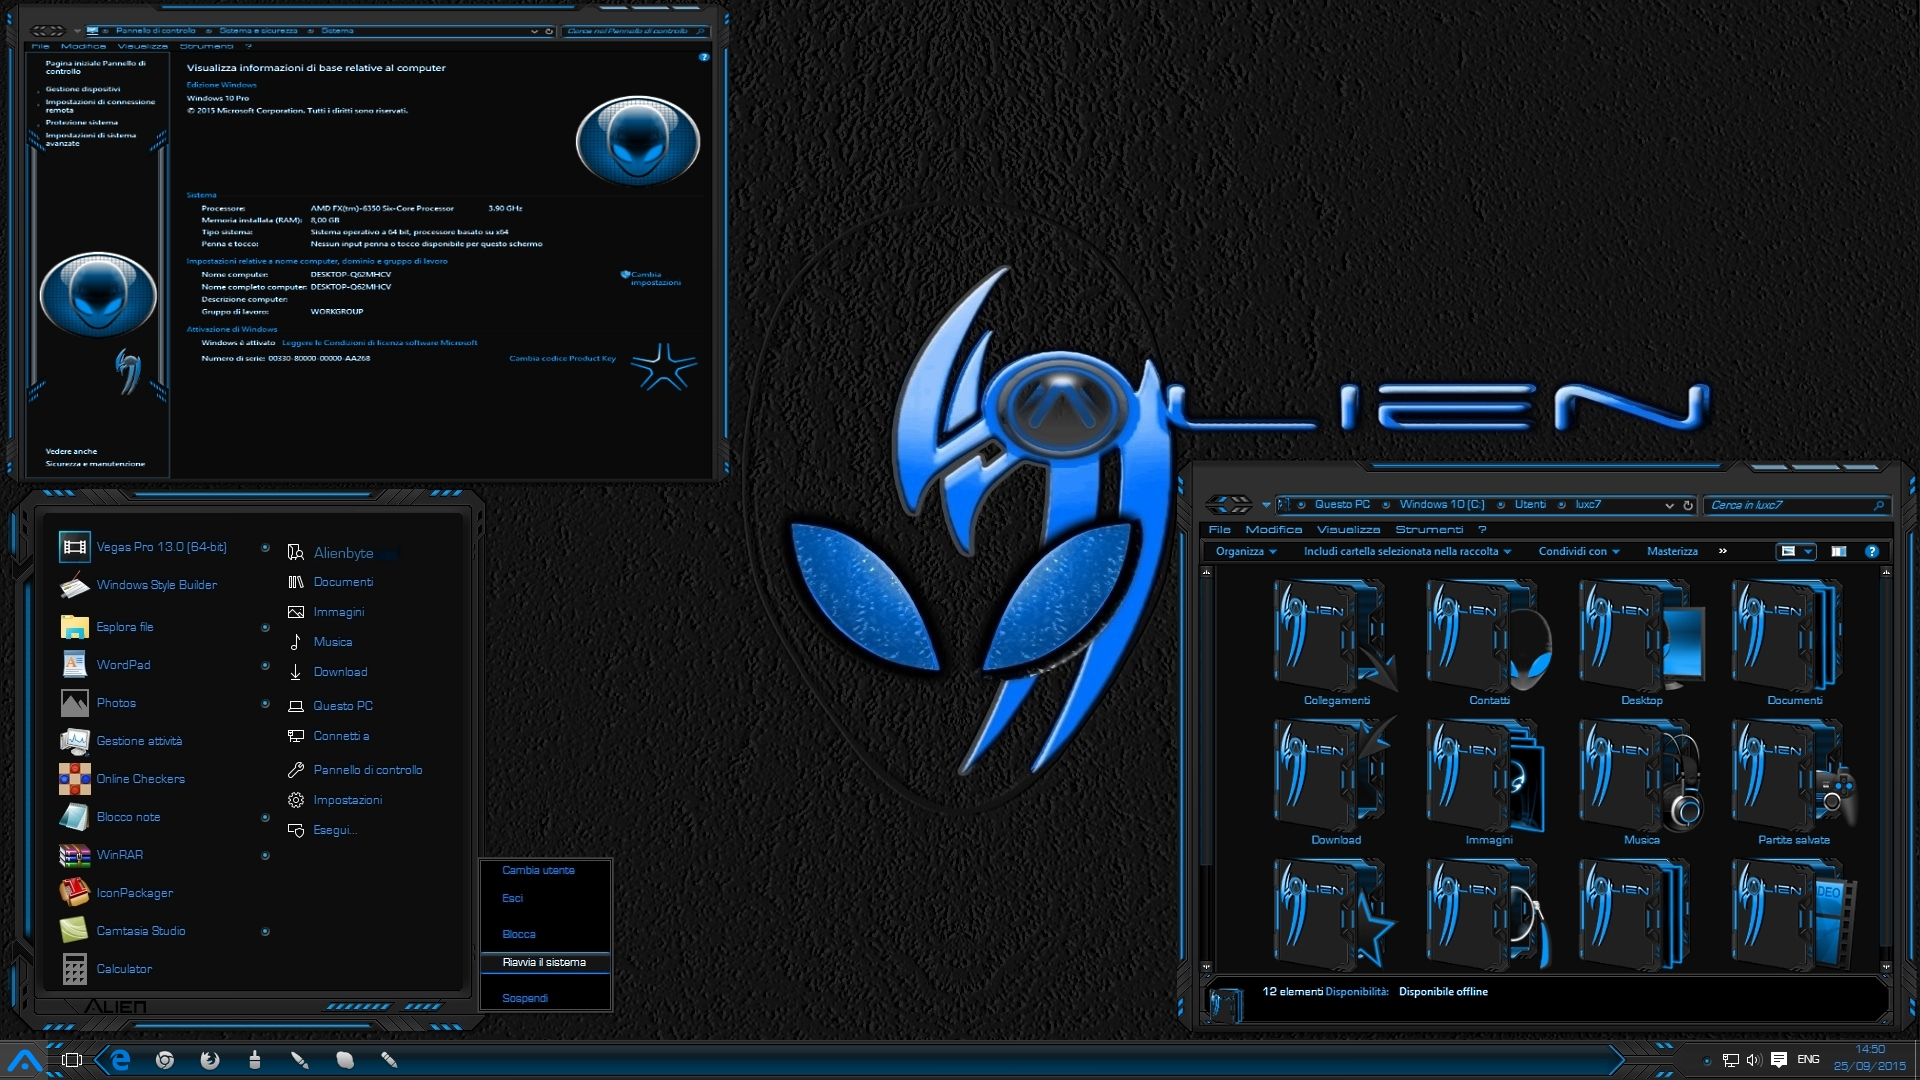 Download free Alienware Themes For Windows 8 64 Bit Free